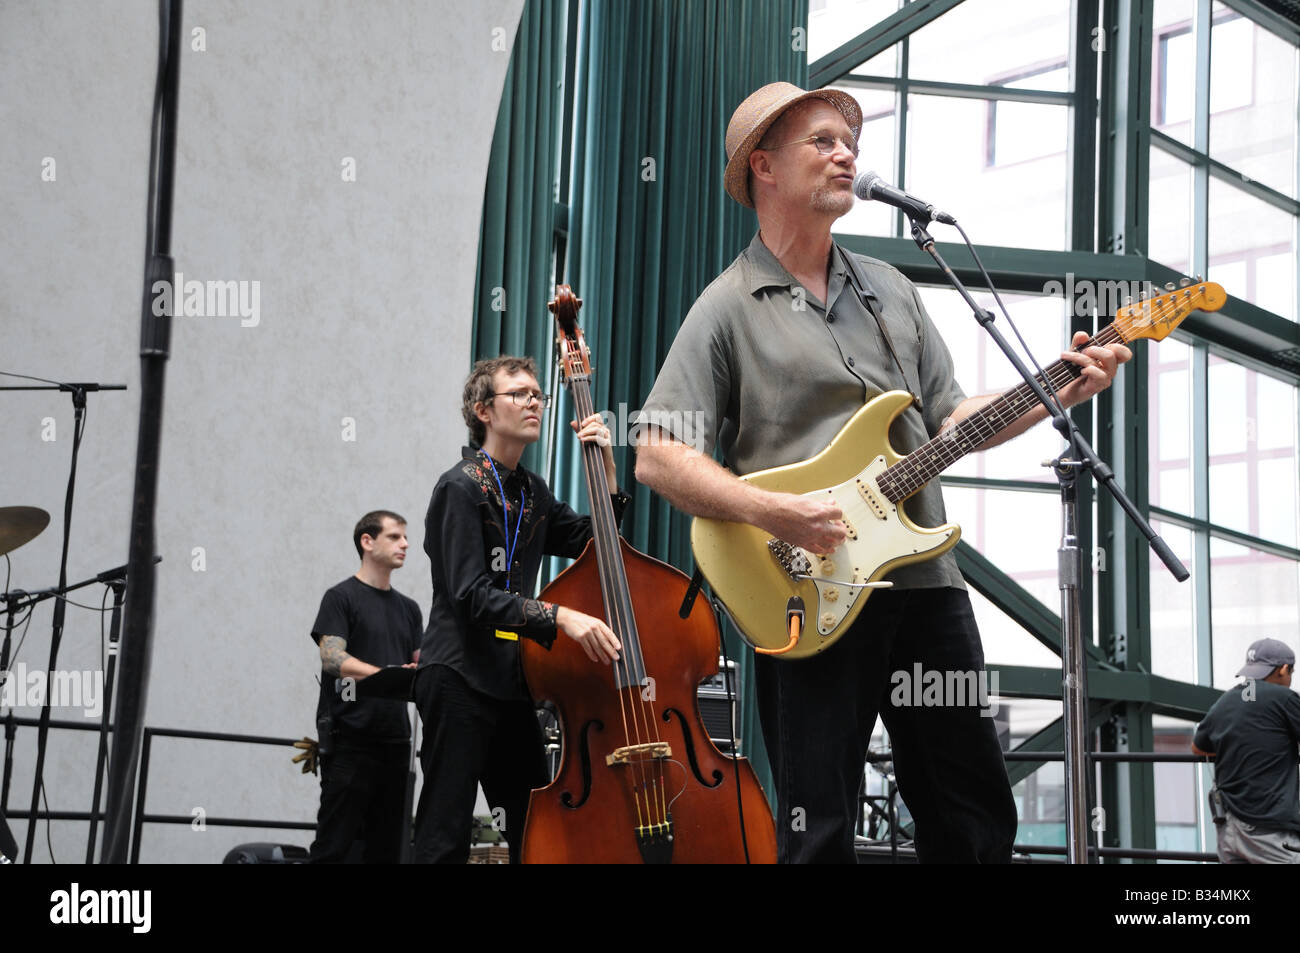 Marshall Crenshaw and other musicians rehearsing for a pop/folk concert at the Winter Garden in Battery Park City, - Stock Image